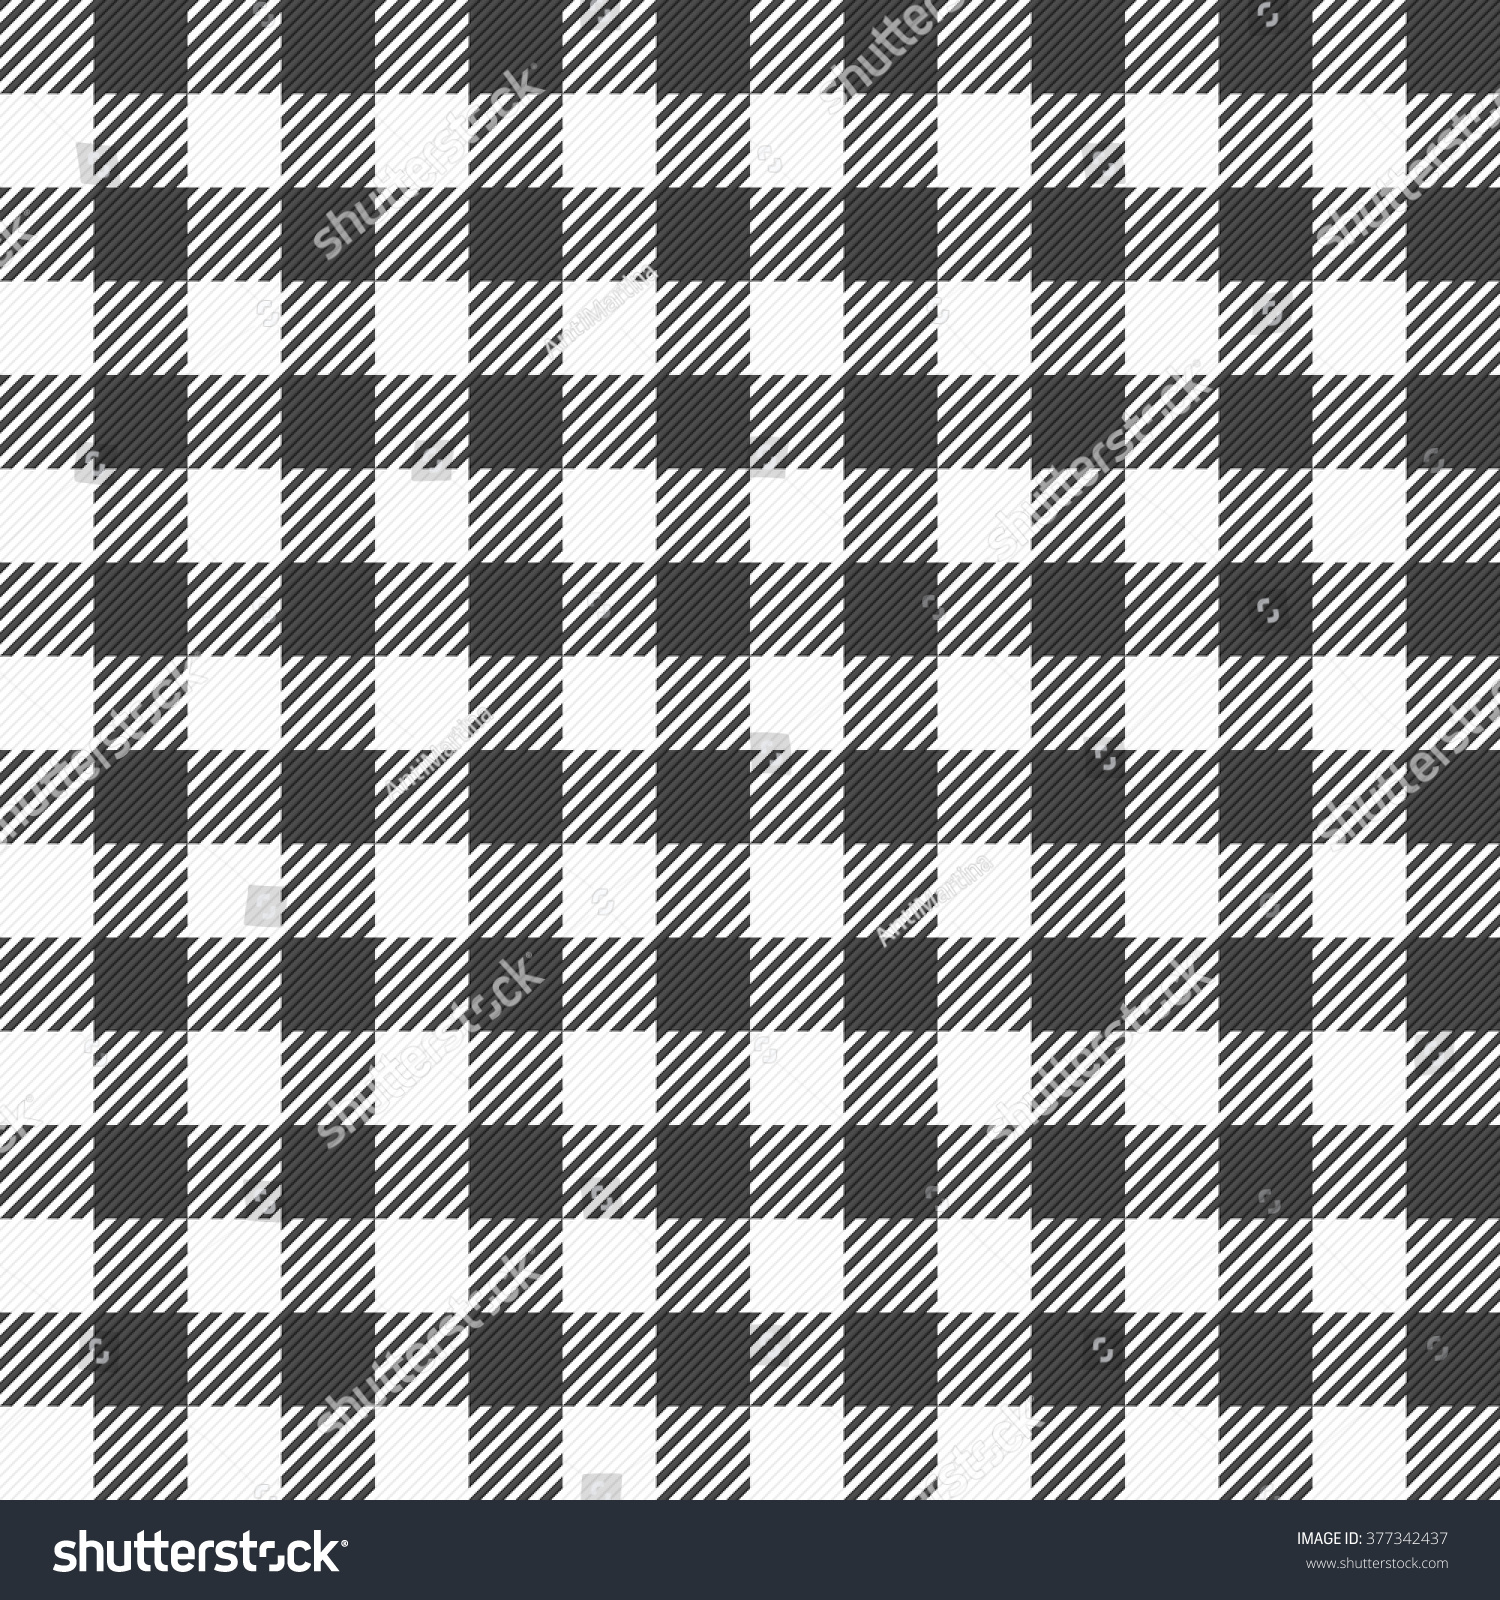 Vector Illustration Of A Black And White Plaid Tablecloth